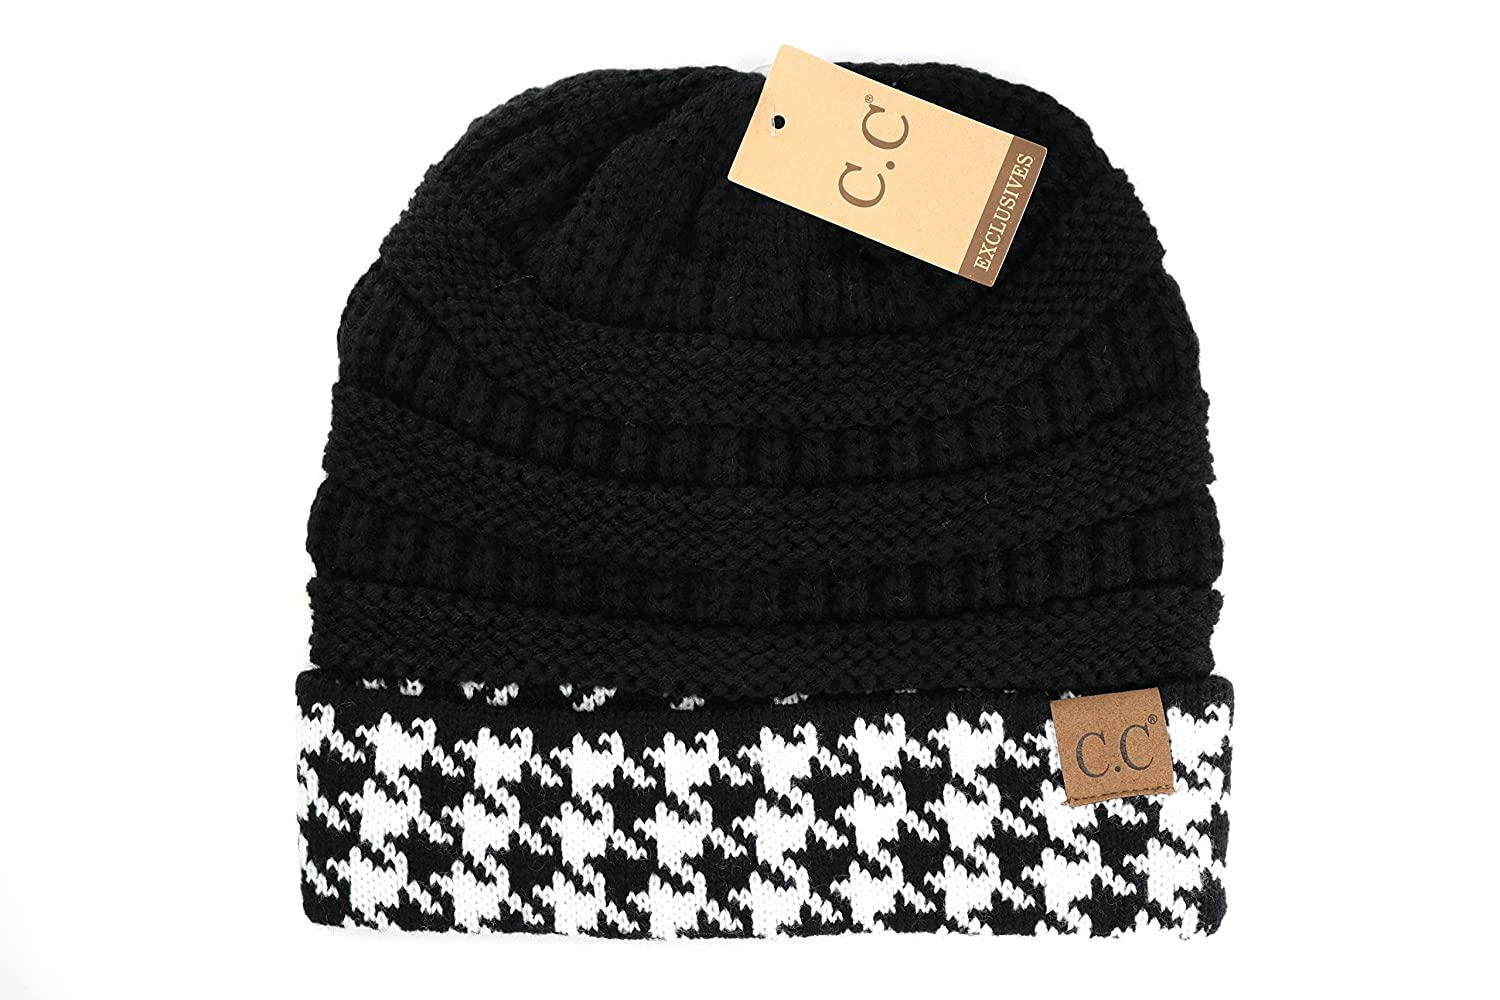 Crane Clothing Co. Women s Houndstooth CC Beanie One Size Black at Amazon  Women s Clothing store  76bc4ef8515